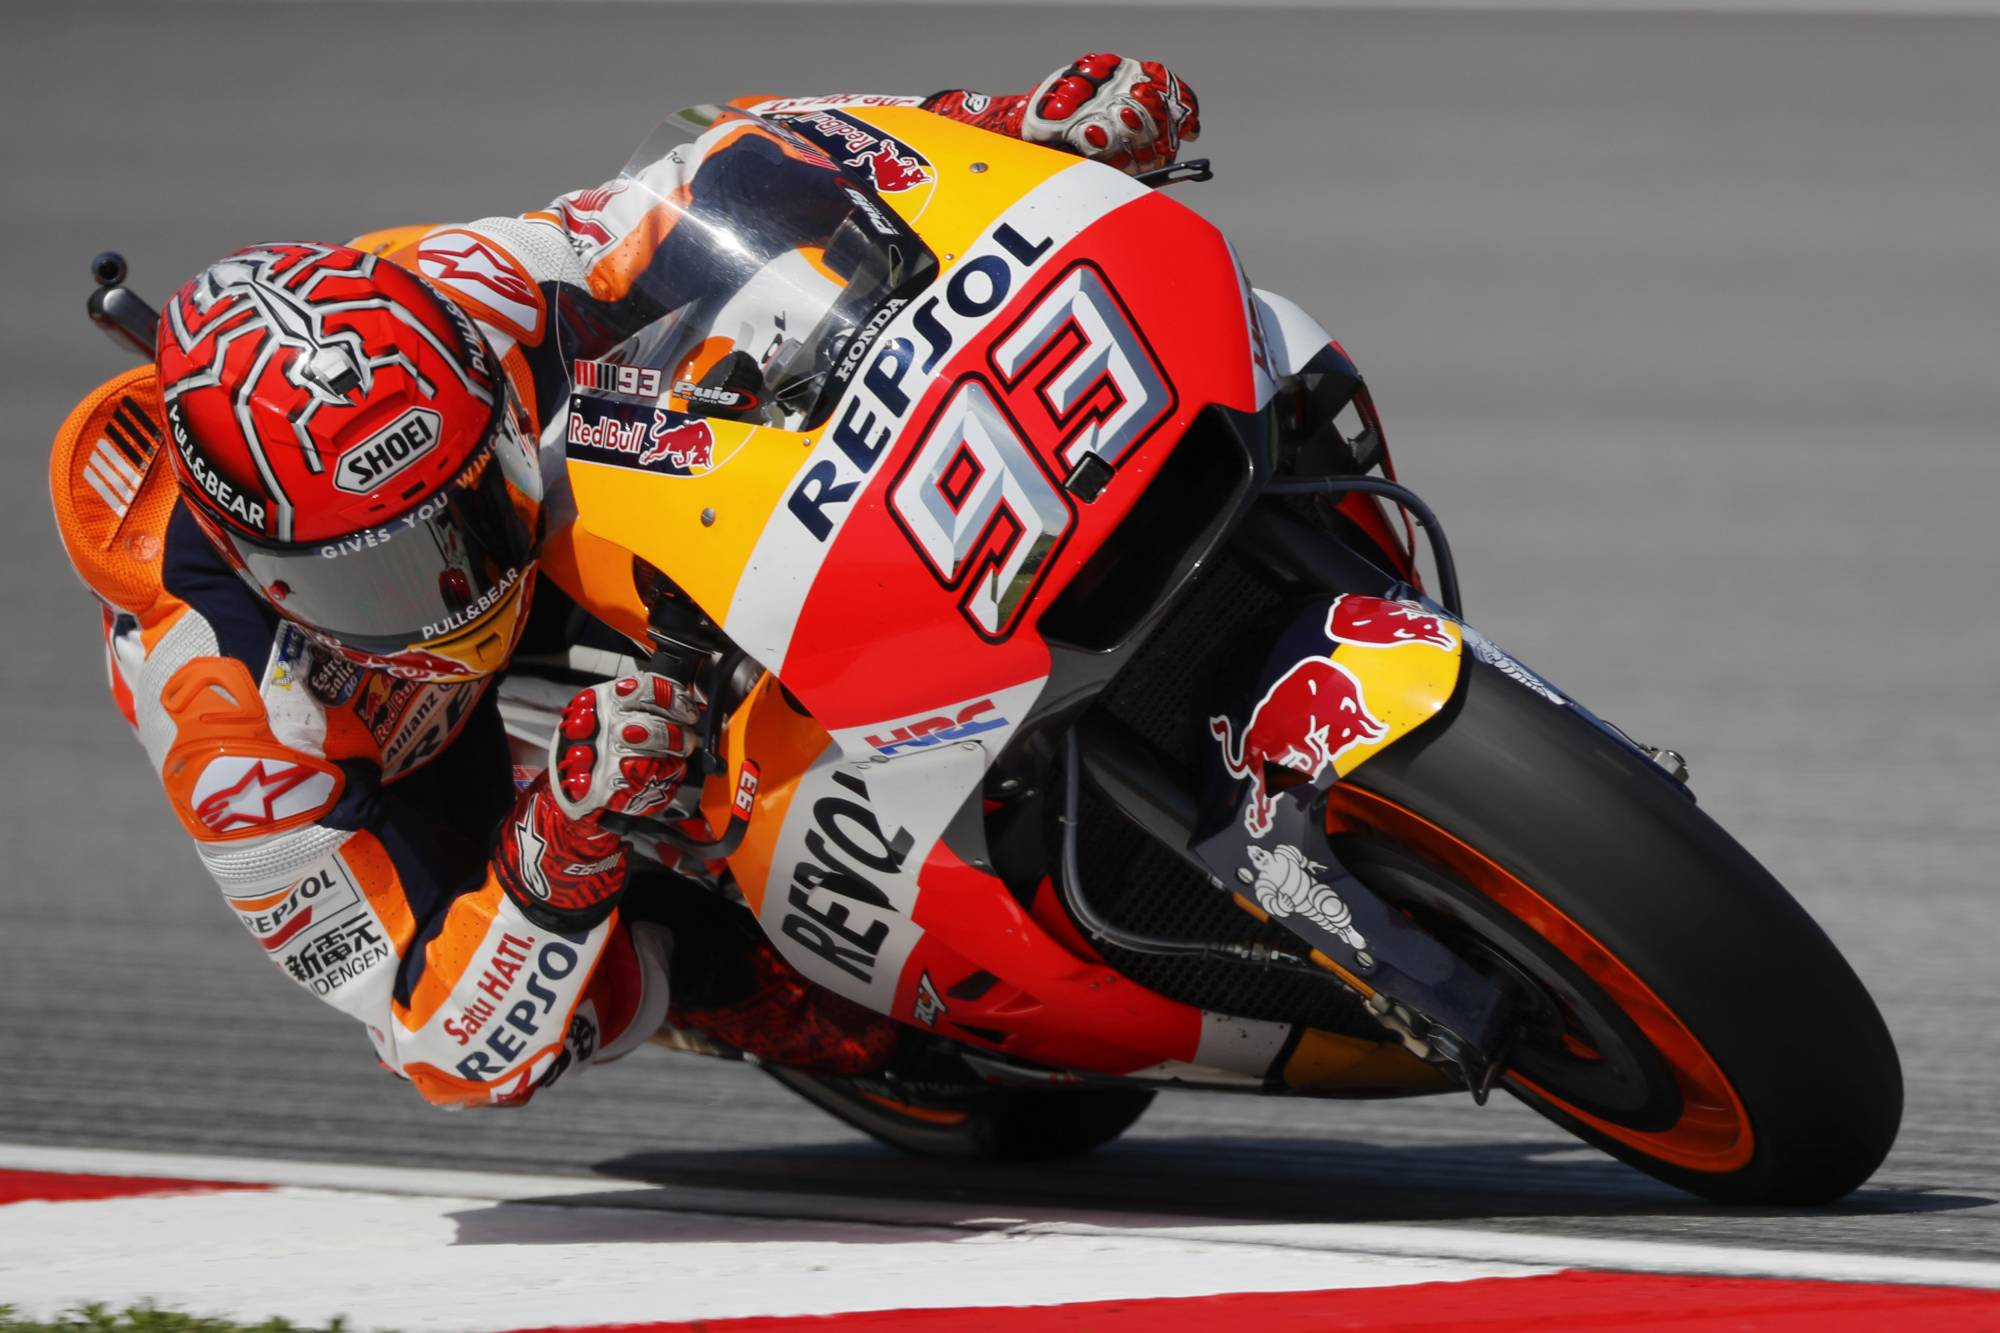 Marquez and Dovizioso go for MotoGP title in final race - FederalNewsRadio.com